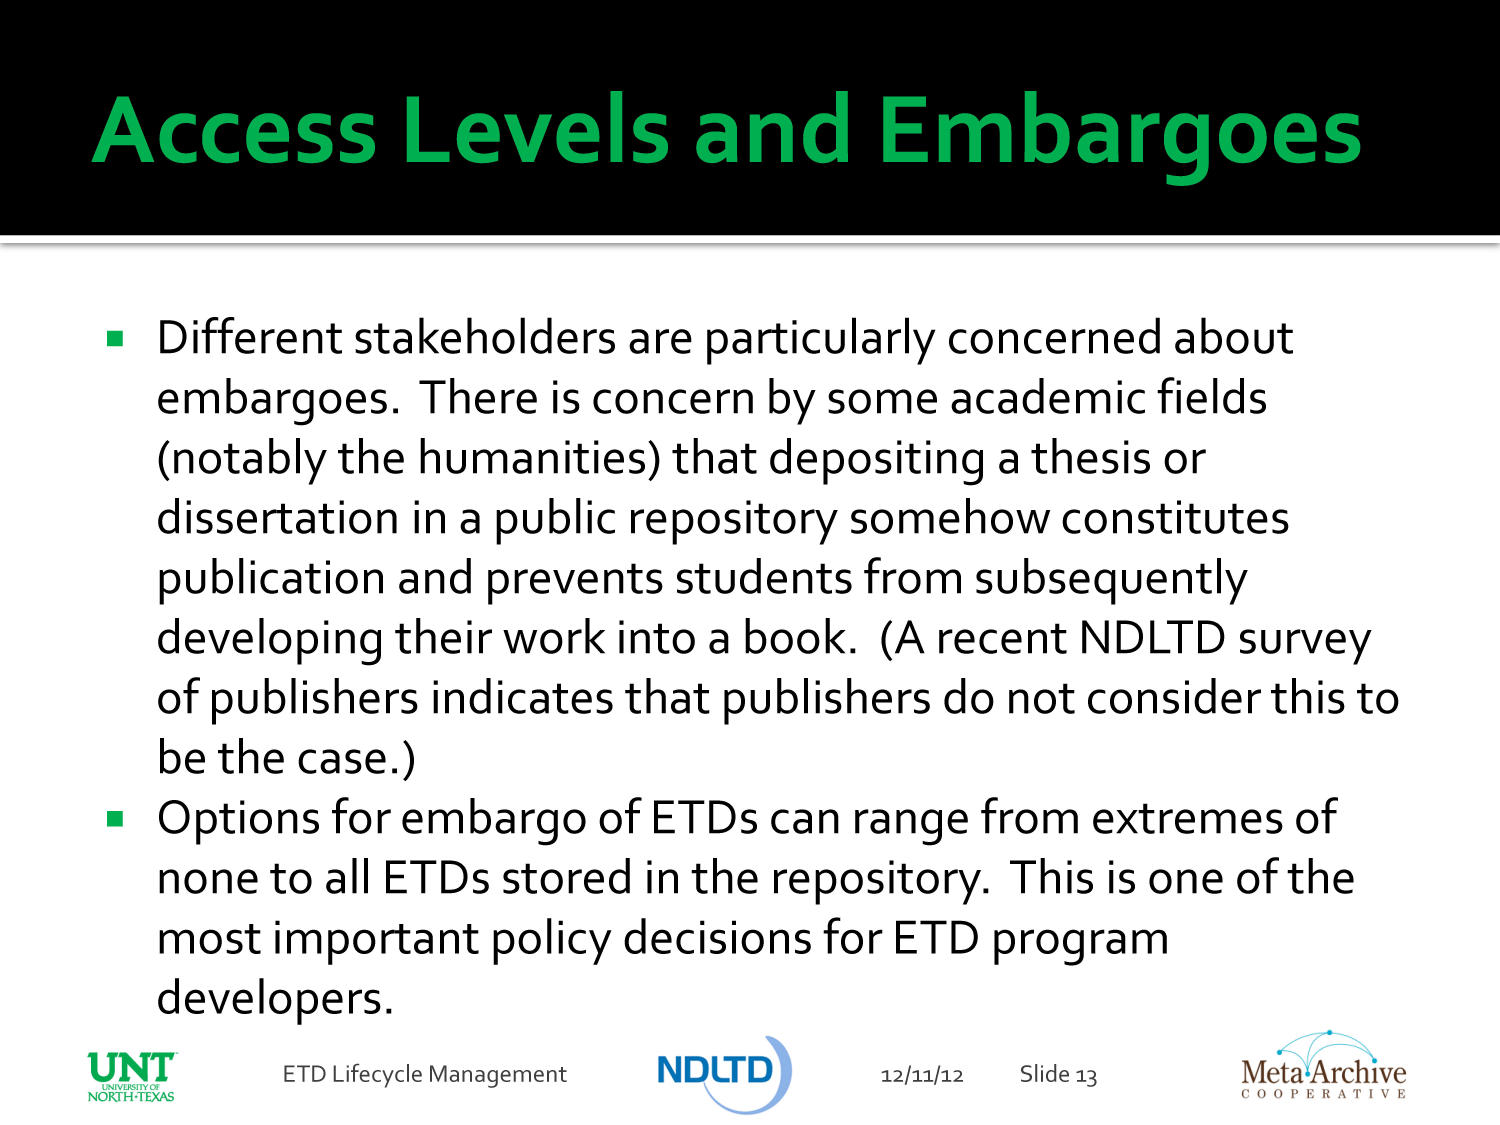 Providing the ETDs of Today for the Researchers of Tomorrow                                                                                                      [Sequence #]: 13 of 23